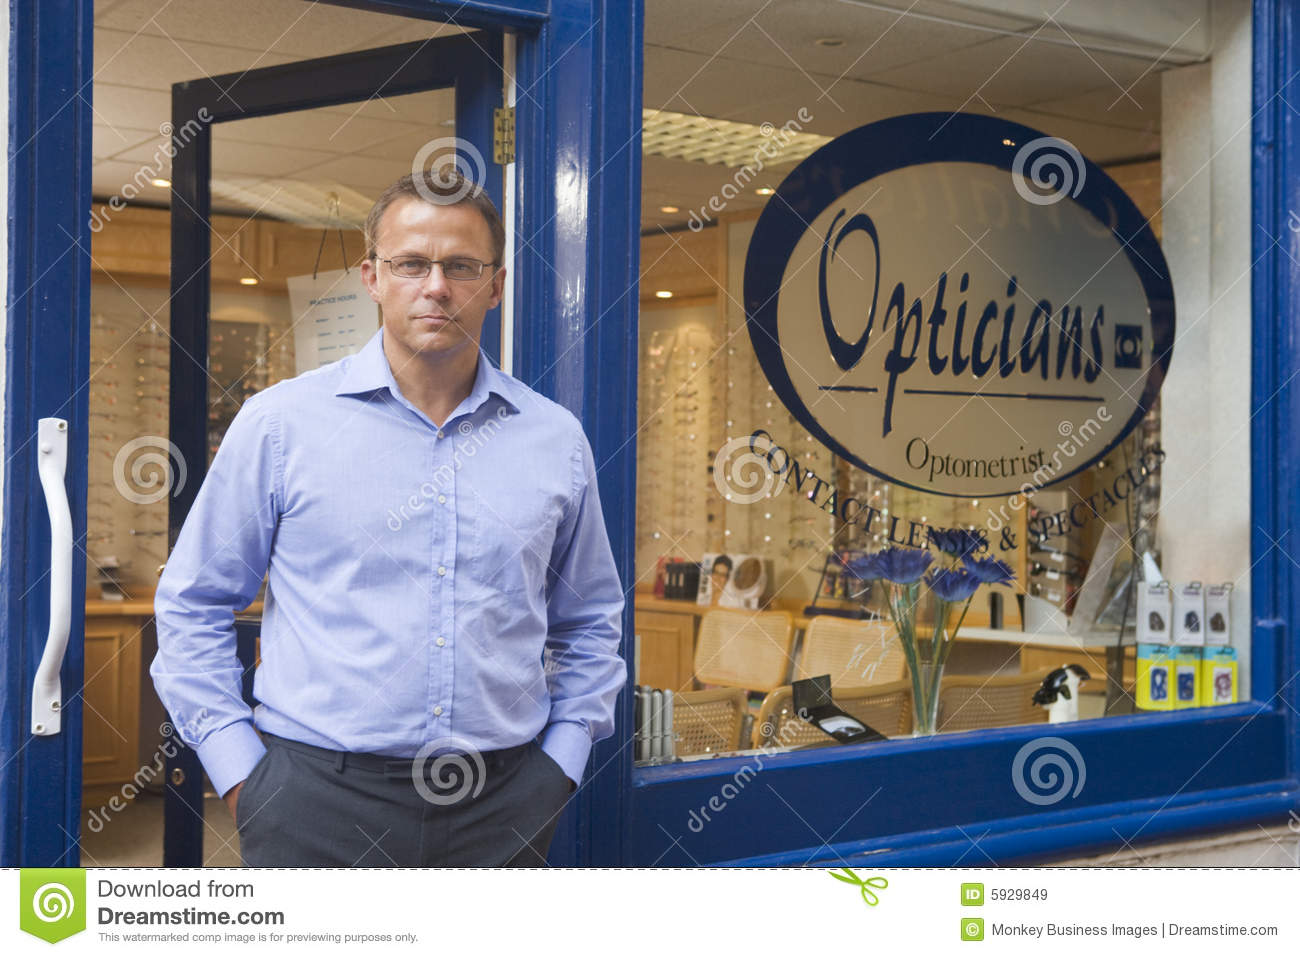 Entrance front man optometrists standing